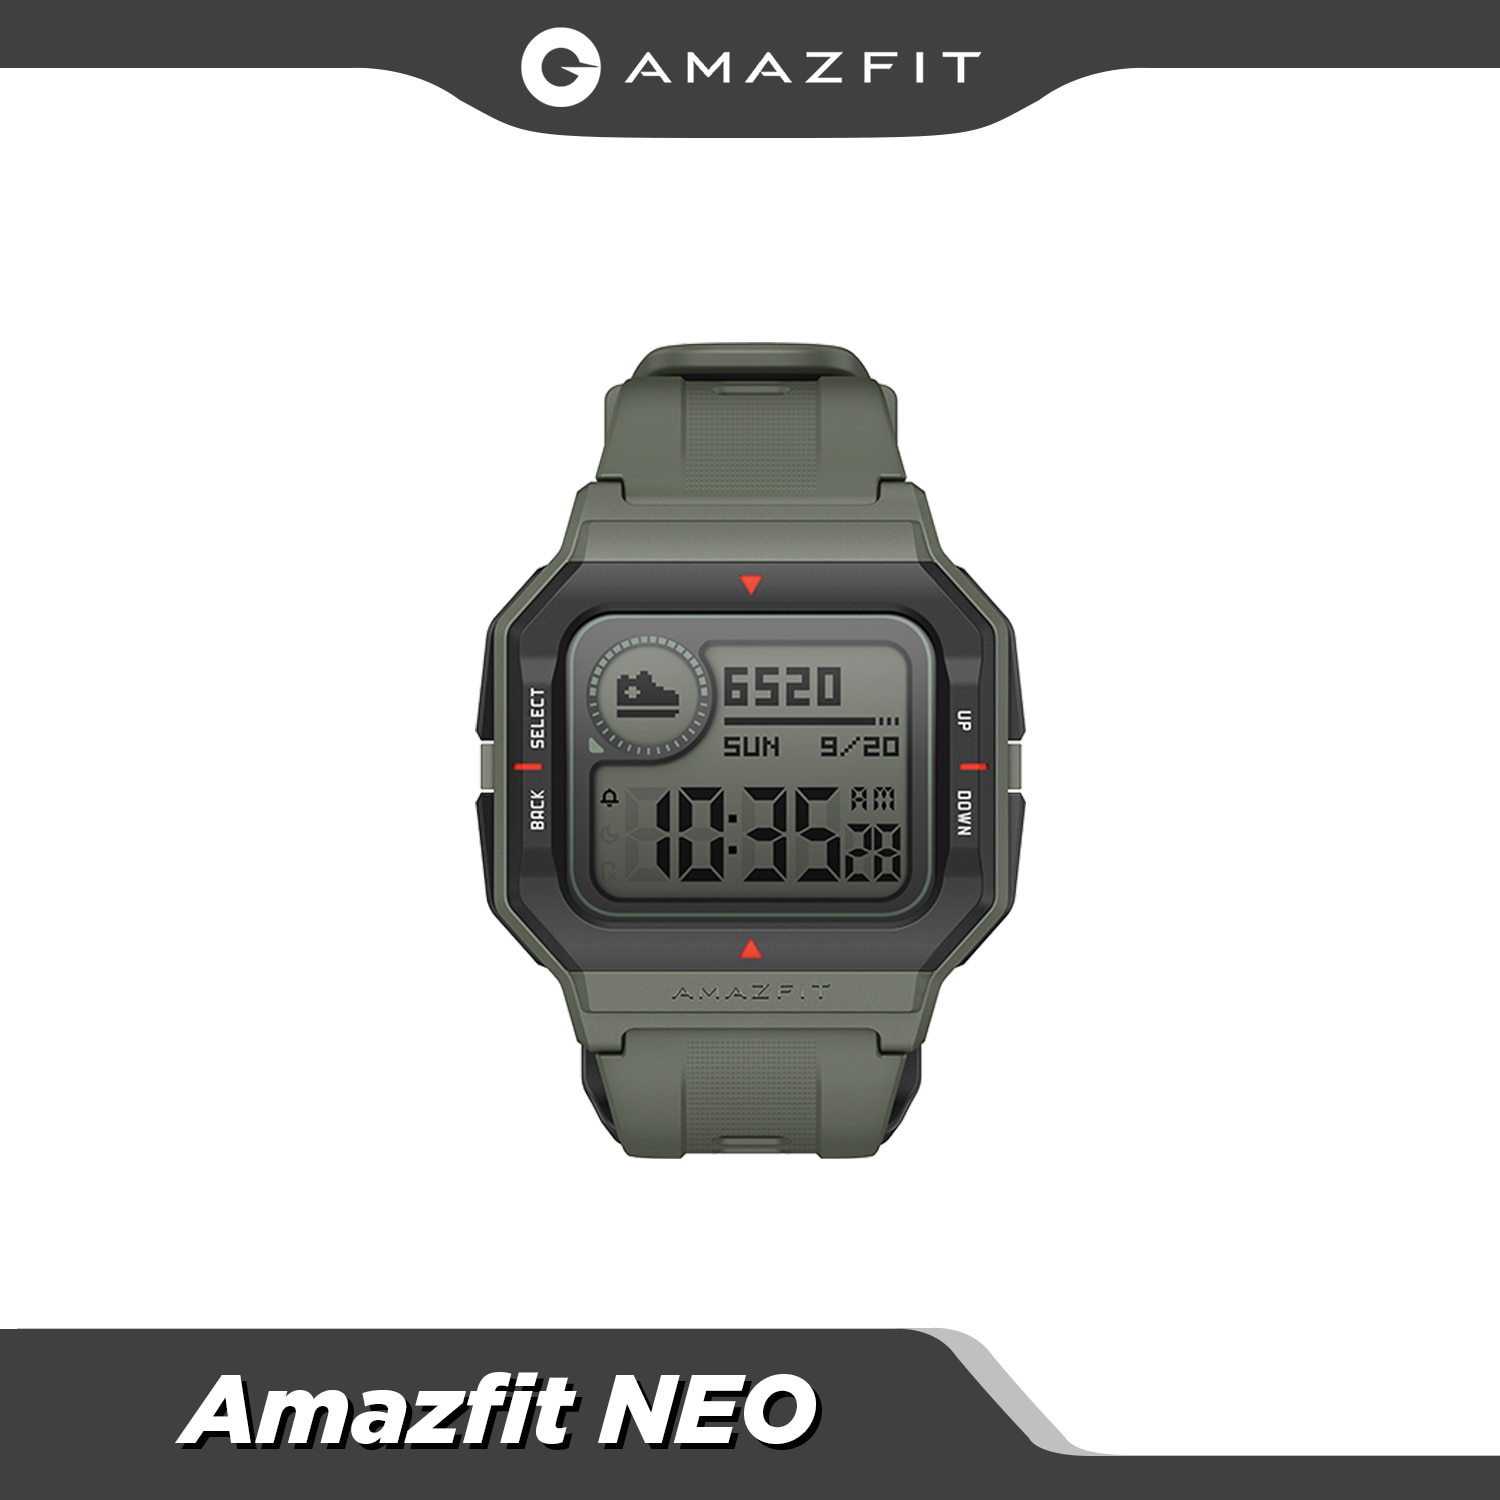 Amazfit Neo Retro Design Smartwatch 5ATM Heart Rate Monitoring Sleep Tracking 28 Days Battery Life Smart Watch red black green